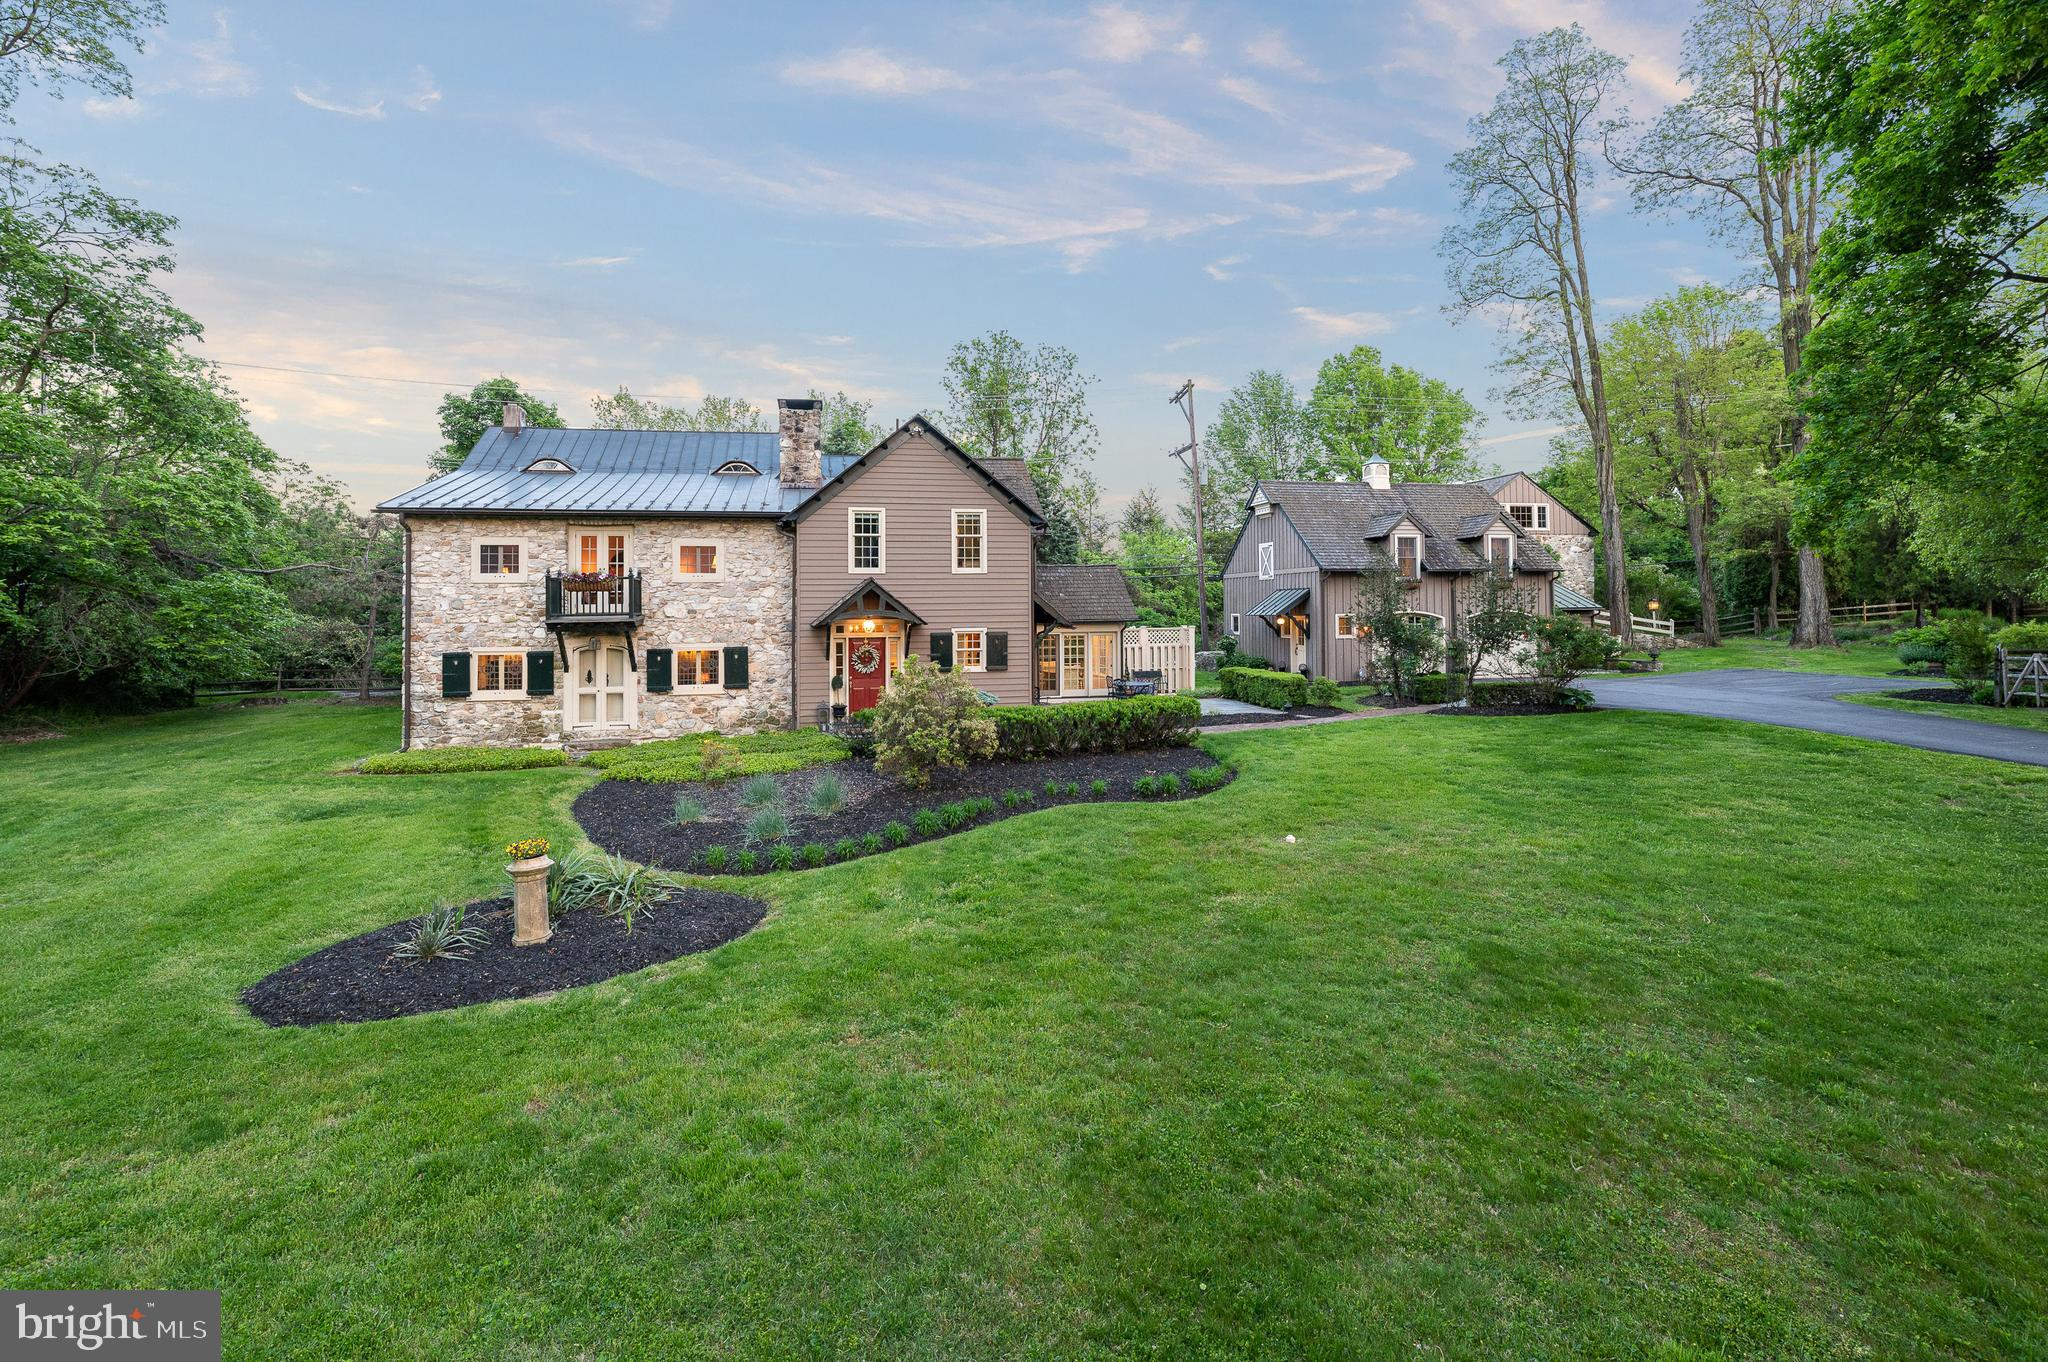 """Recently featured by PhillyMag.com! https://www.phillymag.com/property/2021/04/07malvern-expanded-colonial-farmhouse-for-sale/. Presenting """"Le Petit Bois""""-a sophisticated historic farmhouse with a European flair that has been meticulously expanded and updated over the centuries. The original home is believed to date prior to the 1730's. In the 1800's a French professor created the first enchanting addition while Peter Zimmerman Architects seamlessly blended the most recent elegant addition in the mid 1990's. Delightfully poised on 3.7 lush and serene acres, this property also offers a spectacular Guest House, a Pool surrounded by slate patio, Pool Cabana, English Greenhouse, over-sized 2 car garage, Potting Shed and the original Barn which is ideal for all of your storage needs. This 4-5 Bedroom, 3.5 Bathroom masterpiece offers today's Buyers the amenities they desire while retaining the authenticity and character seldom found in present times. Inside the main home, discover restored and original random width hardwood flooring, walls with exposed stone, original hardware, hand hewn ceiling beams, an impressive walk-in stone fireplace, stained glass lead windows, 2 staircases, great closet space, terrific flow and so much more. The first floor includes a light filled gourmet Kitchen with a Breakfast Room surrounded by expansive windows, an adjacent Dining Room with original period antique corner cupboards, a generous sized Great Room with an incredible stone wood burning fireplace, an Office with a wet bar and fireplace, a graceful Entry Foyer, Powder Room and a convenient Mud Room with cubbies.  Up the main stairs, with an entire wall of exposed original stone, the beautiful Primary Suite includes a cathedral ceiling with beams, a cheerful Bath and a large walk-in closet. Two additional Bedrooms, one was the former master bedroom with walk in closet and the other is currently used as a 2nd floor Den, a lovely large Jack n Jill Bath with shower and tub and the Laundr"""